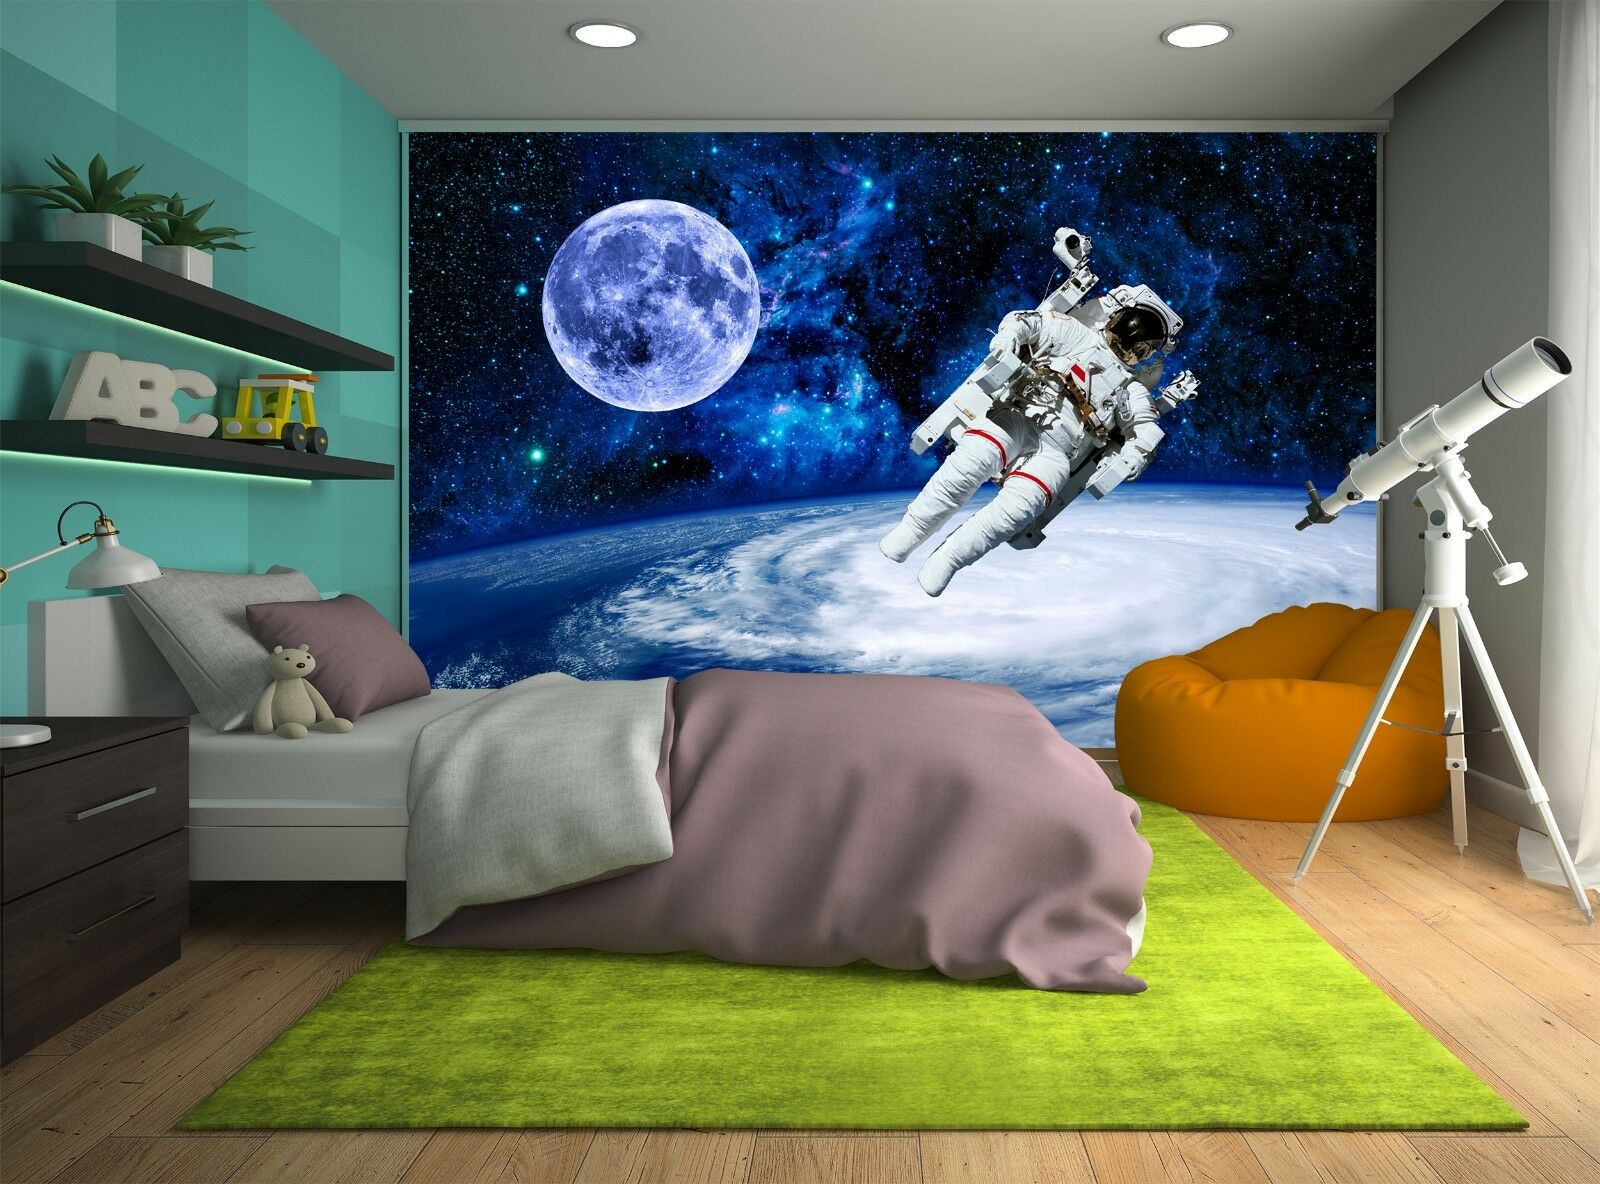 Astronaut in Moon Space Photo Wallpaper Wall Mural DECOR Paper Poster Free Paste